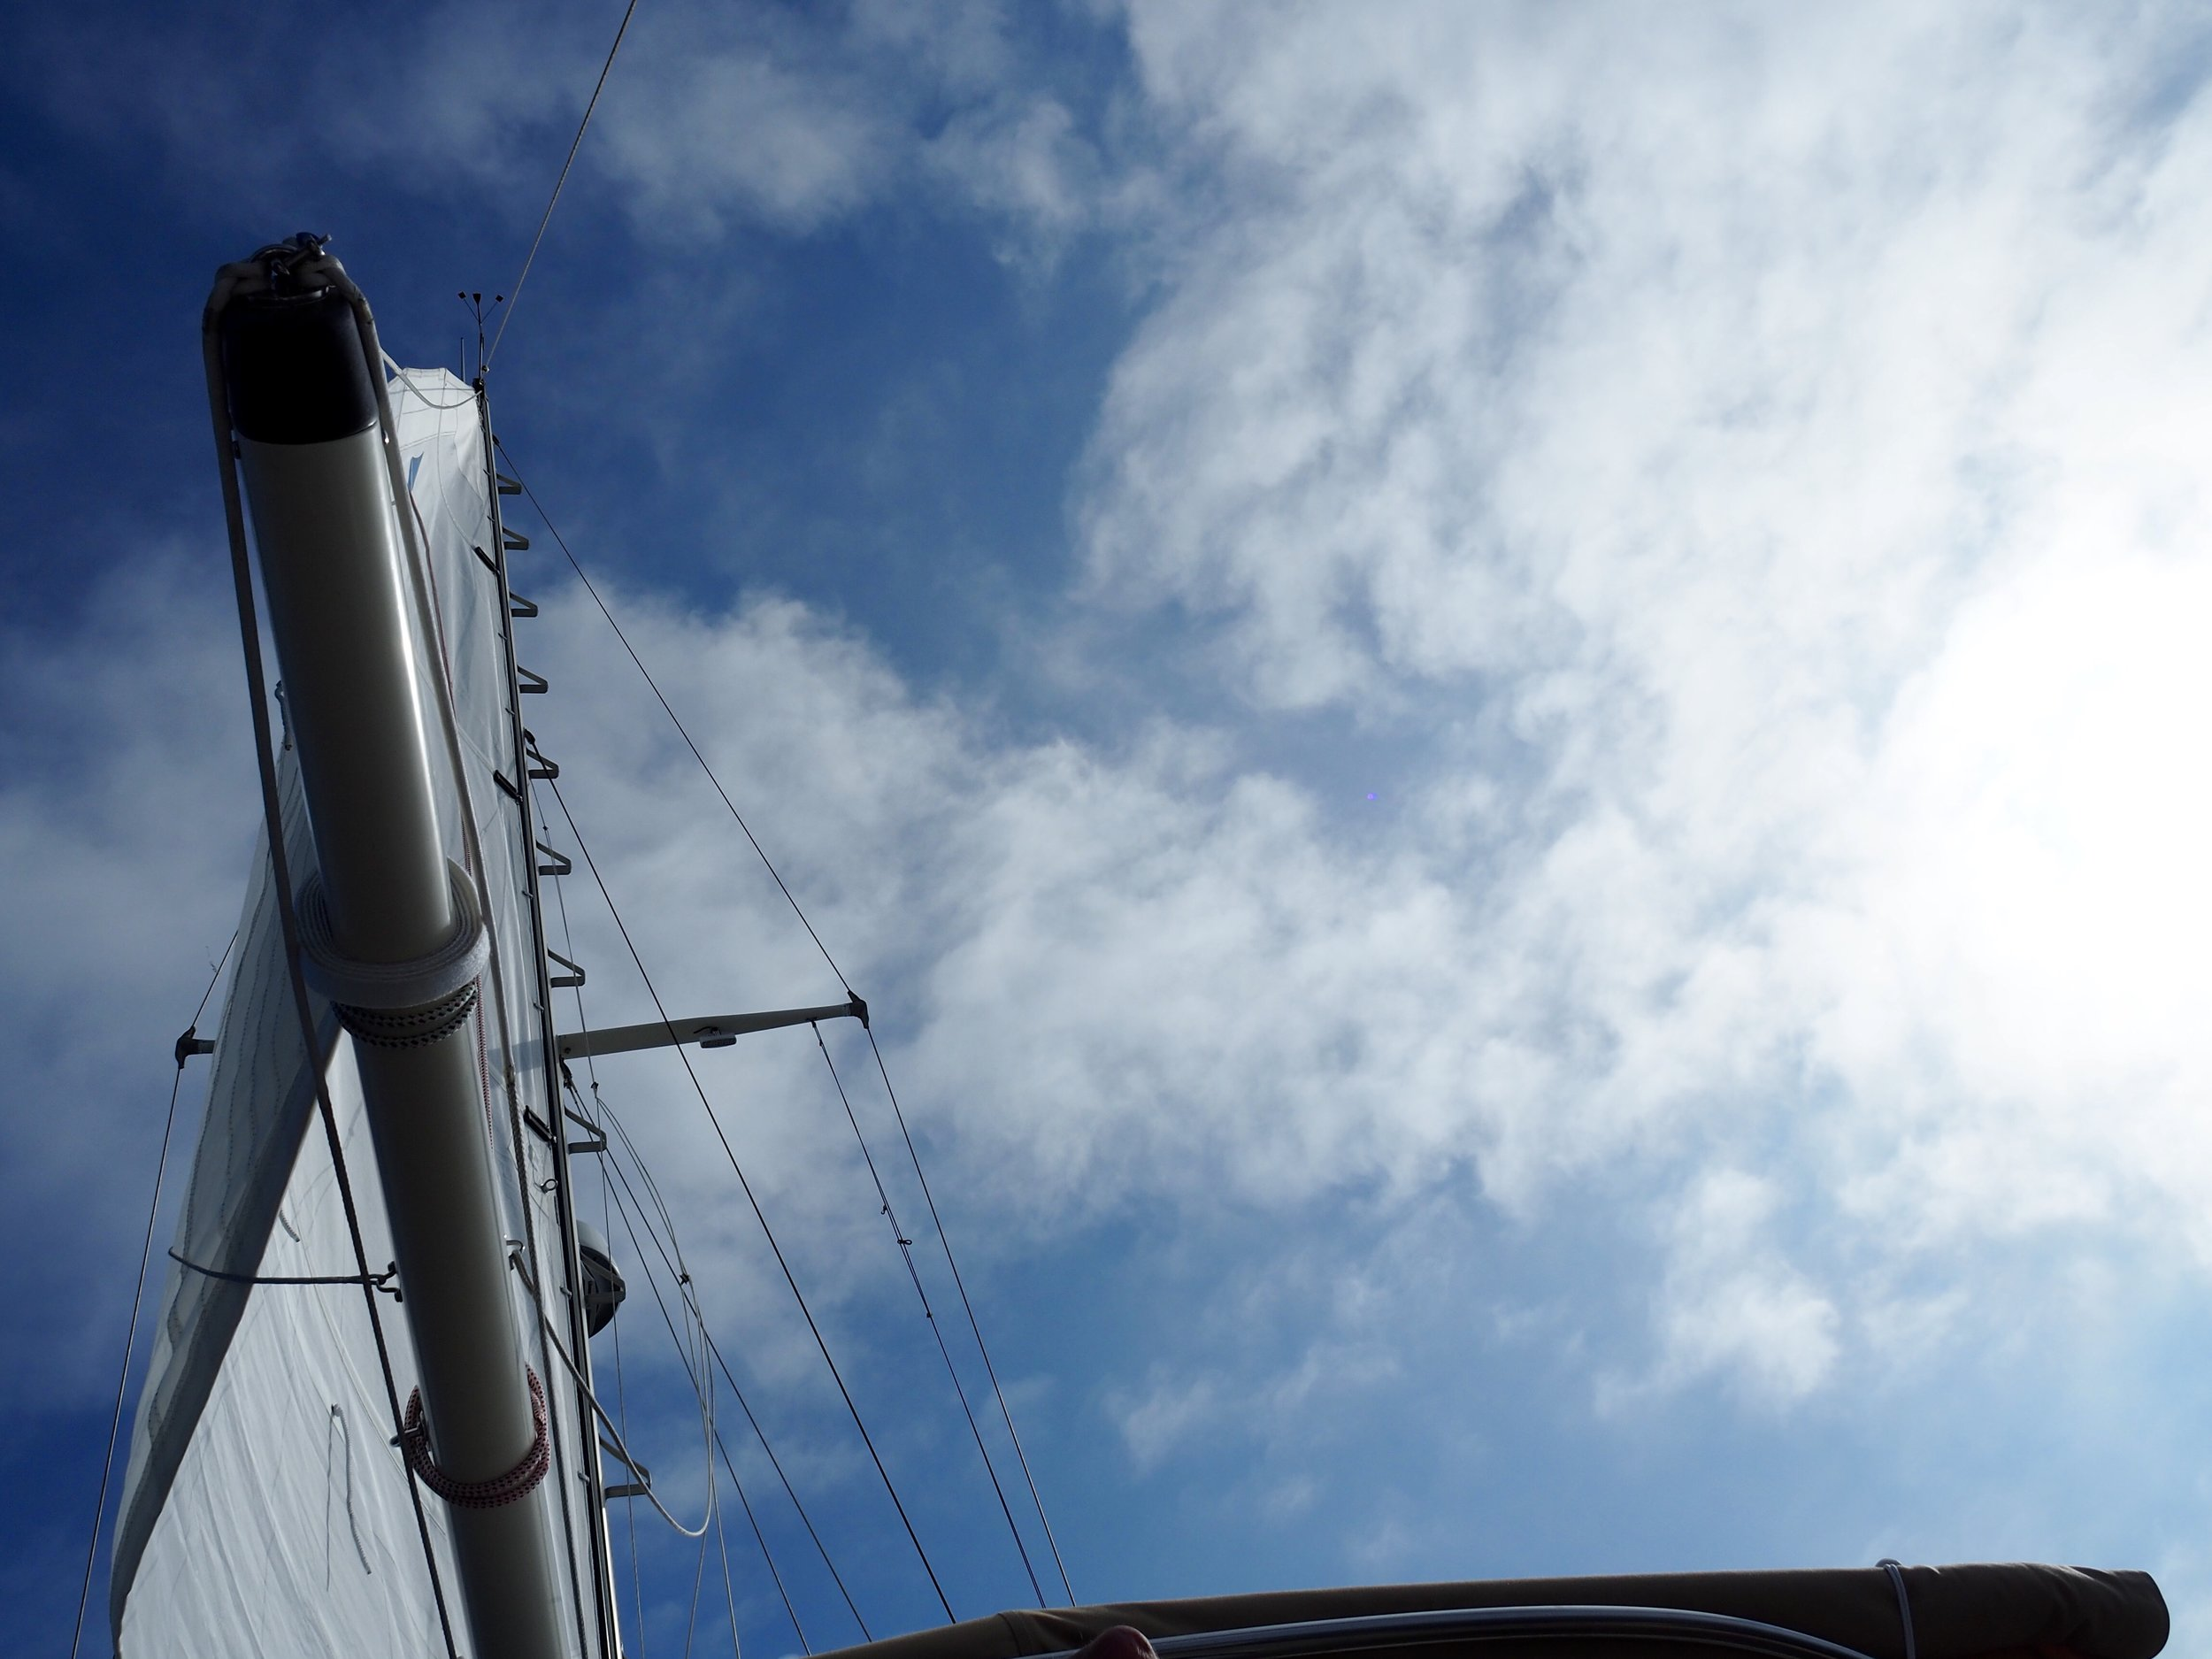 The peace of a full sail and a blue sky. Also of a boat so well balanced — even close hauled — you can lie back in the cockpit and see the world this way.